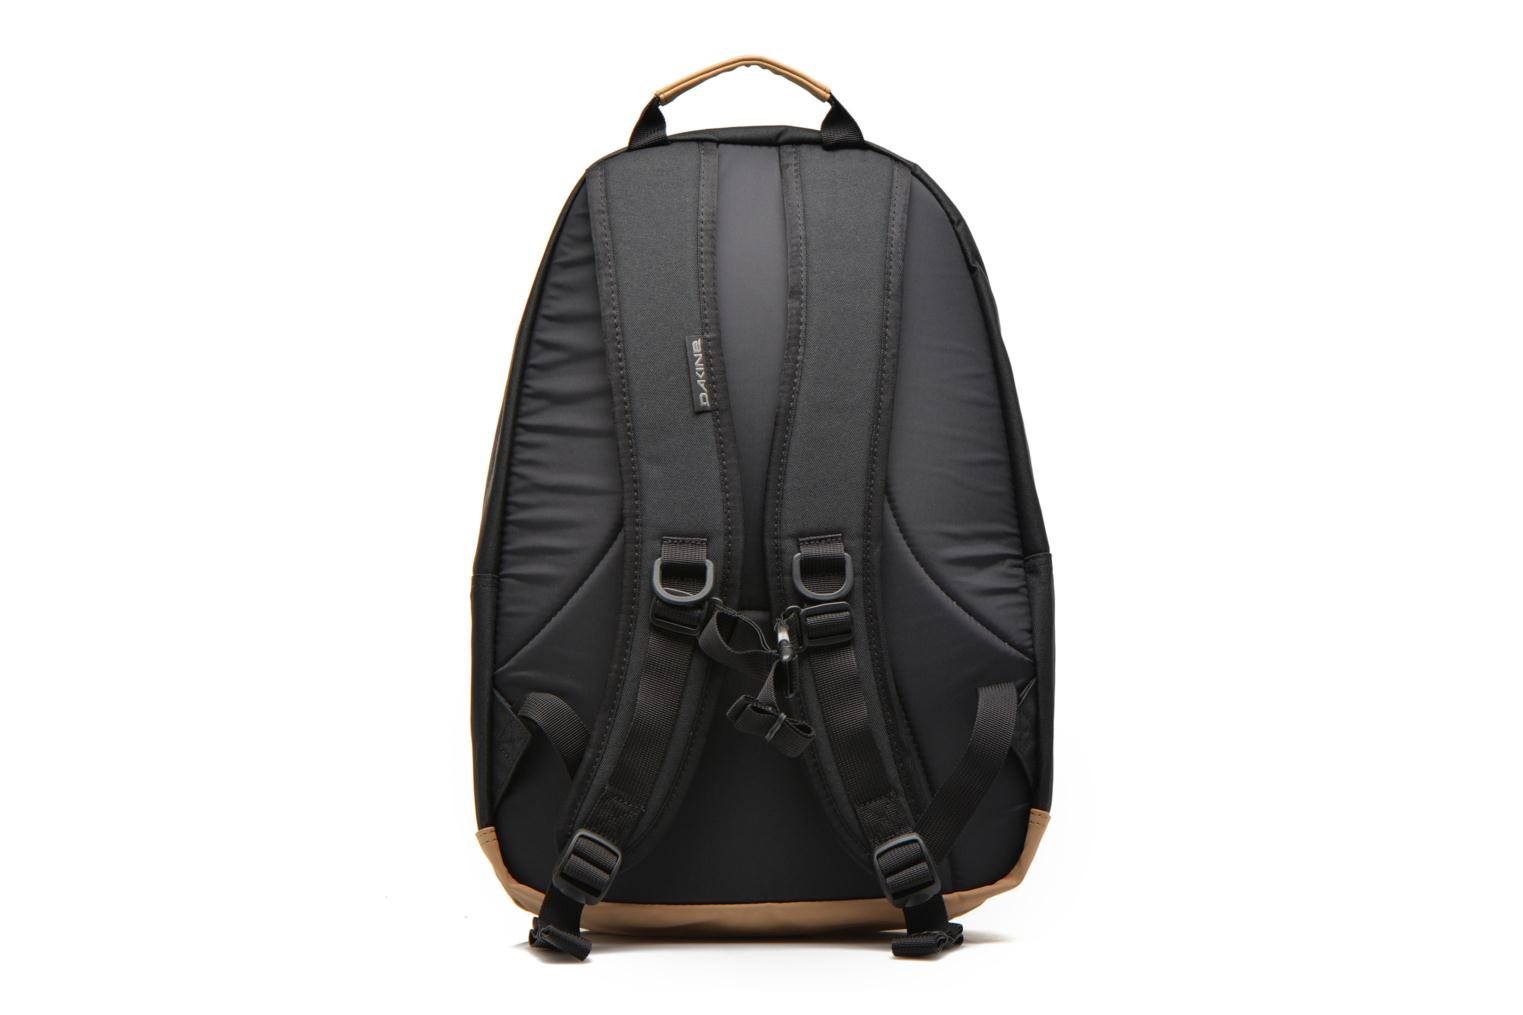 DETAIL BACKPACK Black